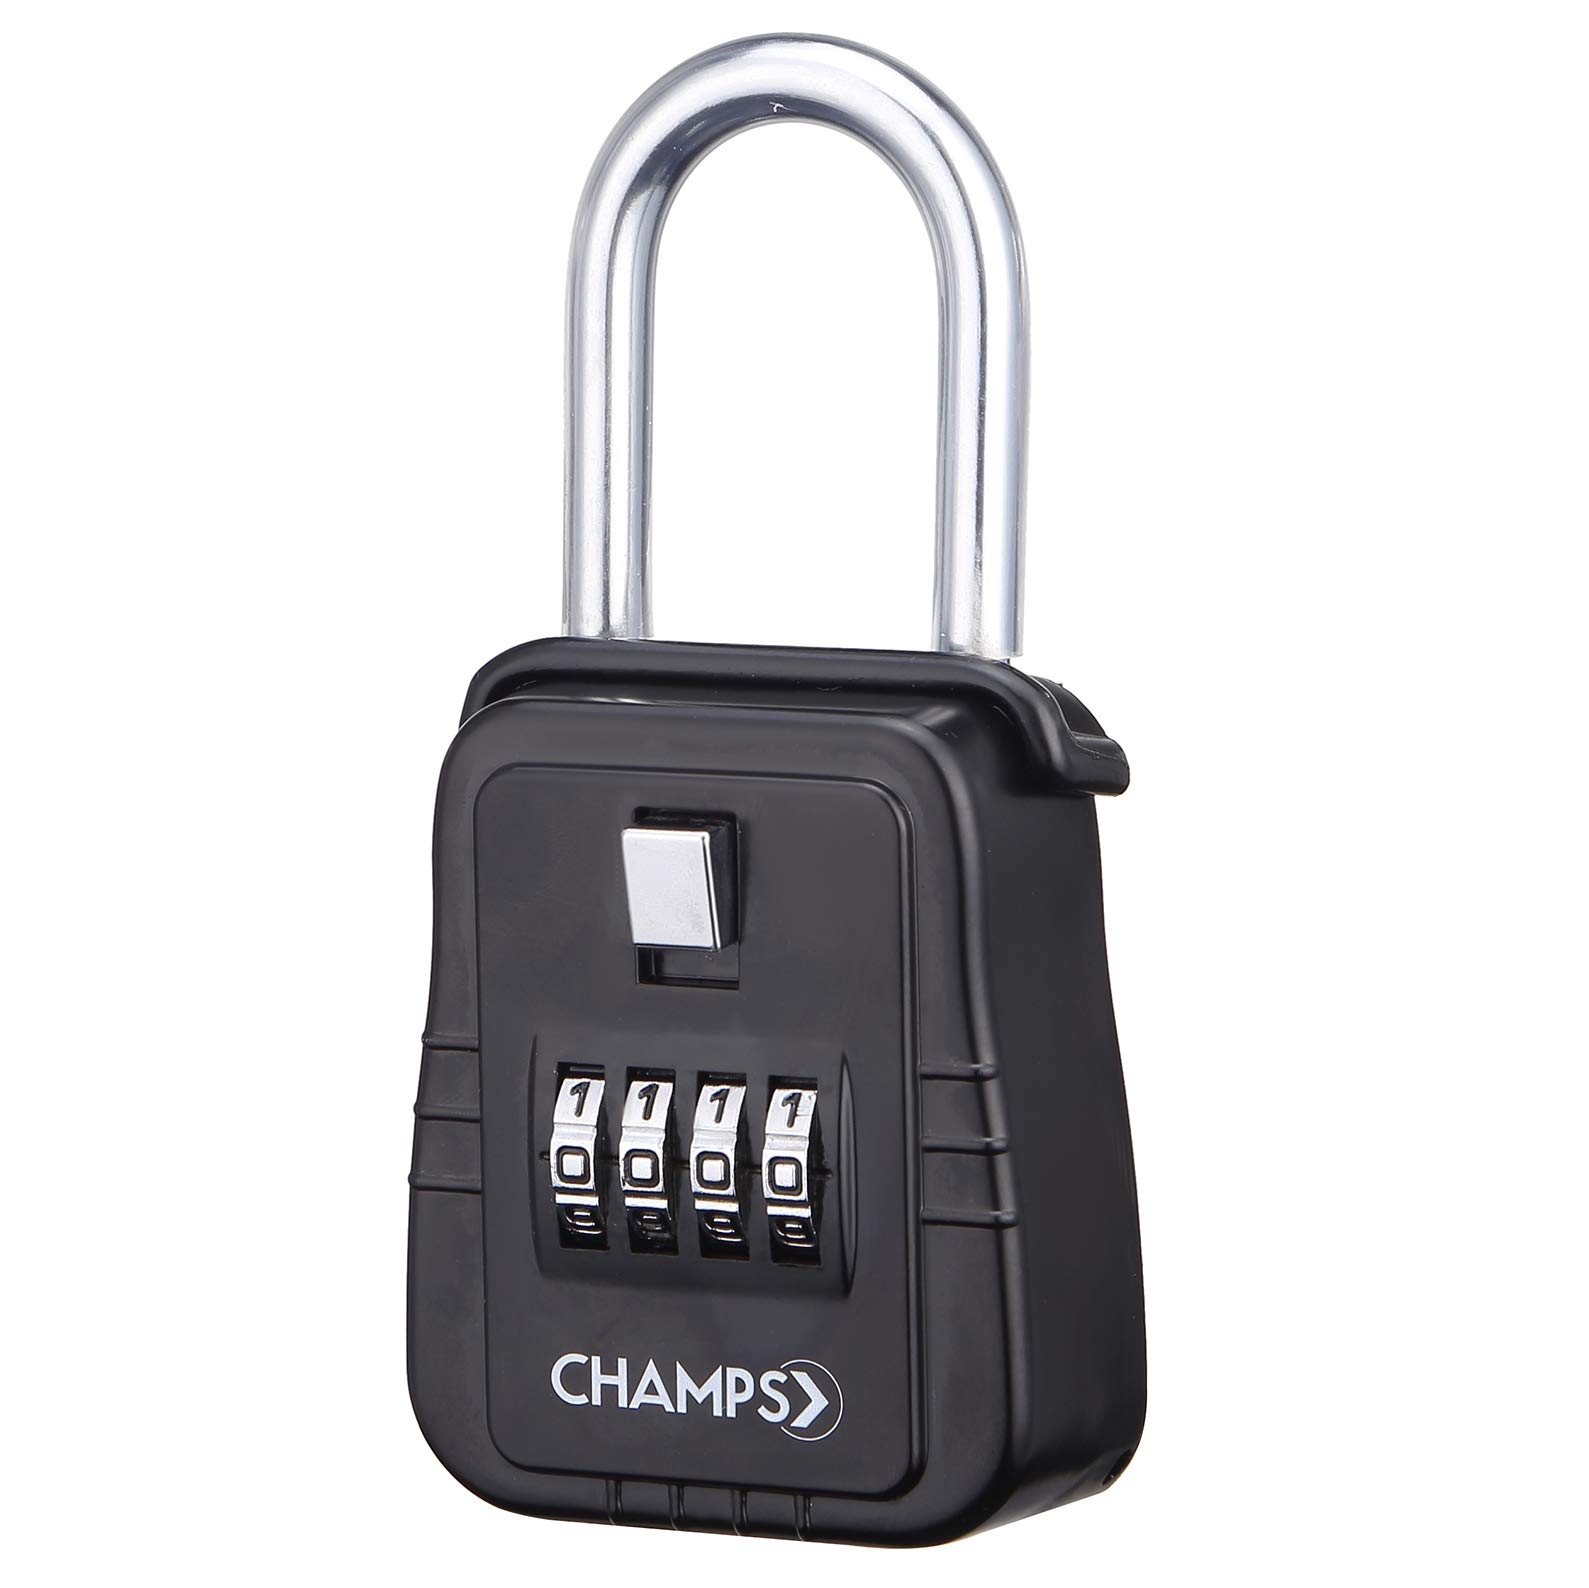 Champs Combination Realtor Lock, 4 Digit Key Padlock, Real Estate Key Lock Box, Set-Your-Own Combination by Champs